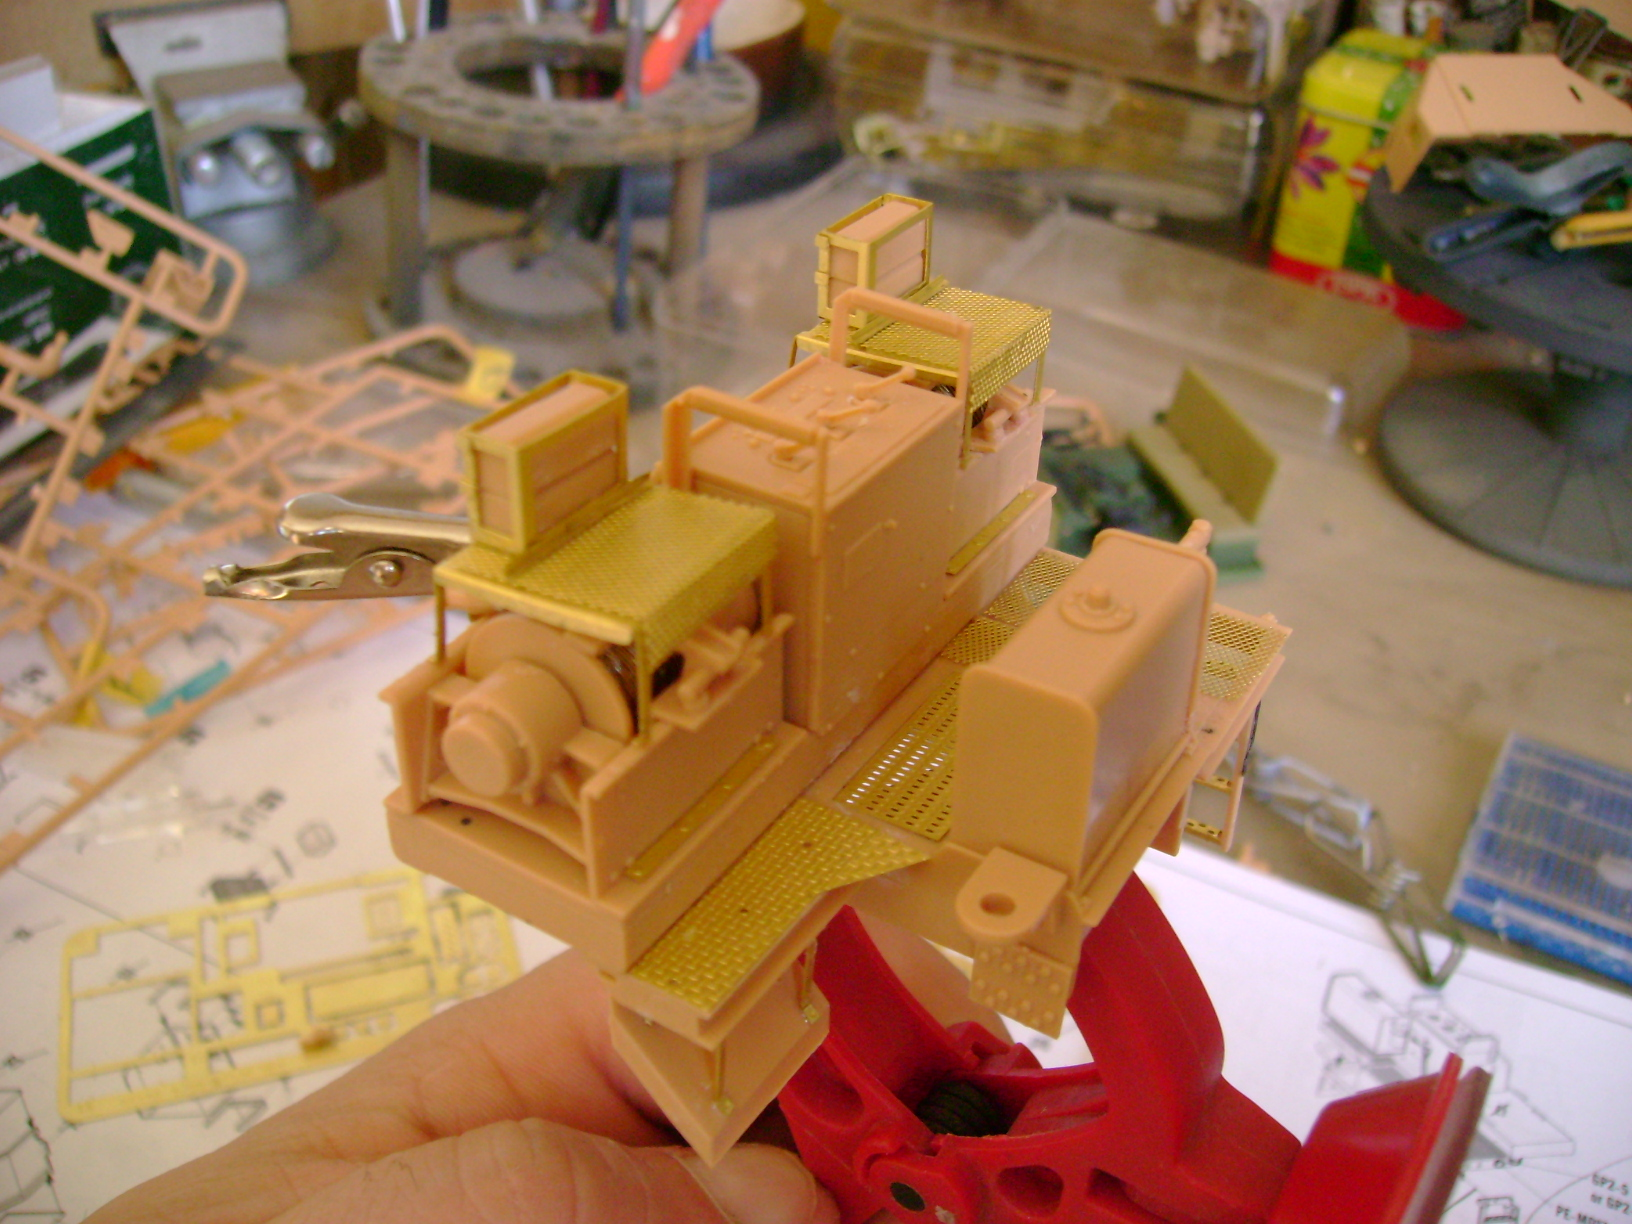 M1070 Truck Tractor & M1000 Semi-Trailer By T-bird!!!!! 1/35 Hobby Boss.Up du01/02.... - Page 3 58811120